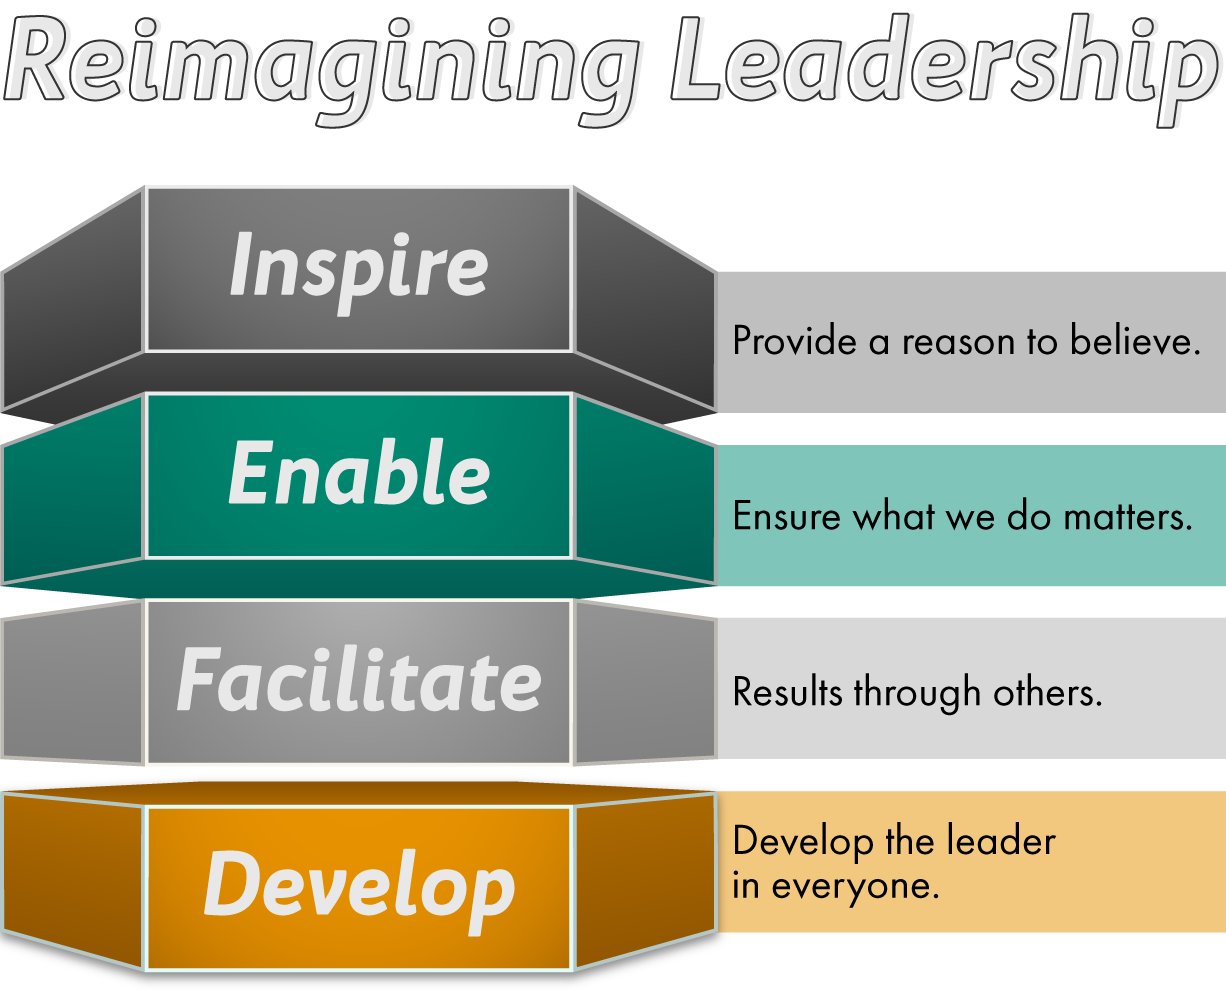 Reimaging-Leadership.png